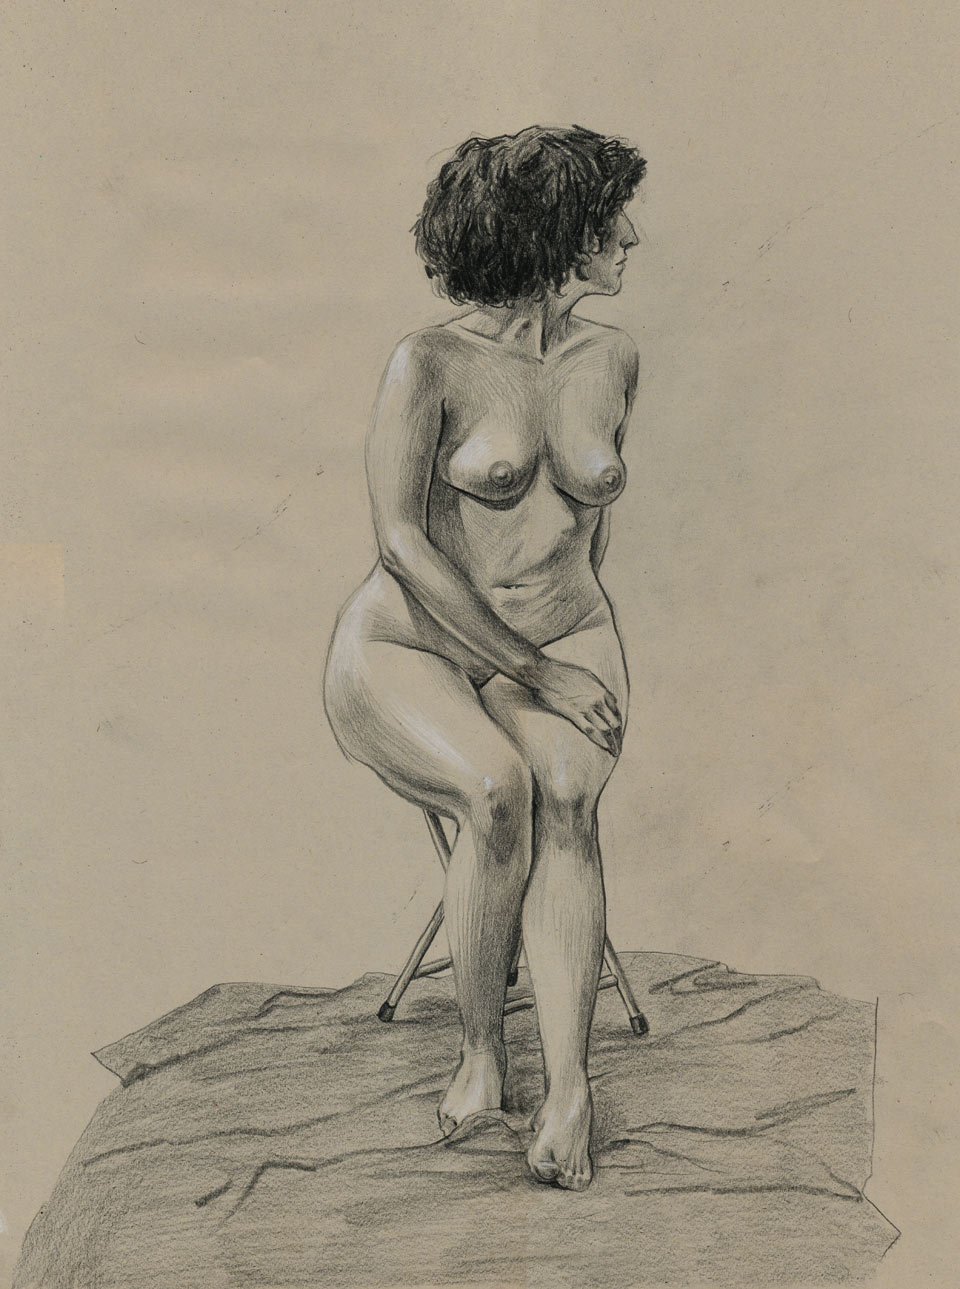 Black and White Pencil on Tinted Paper